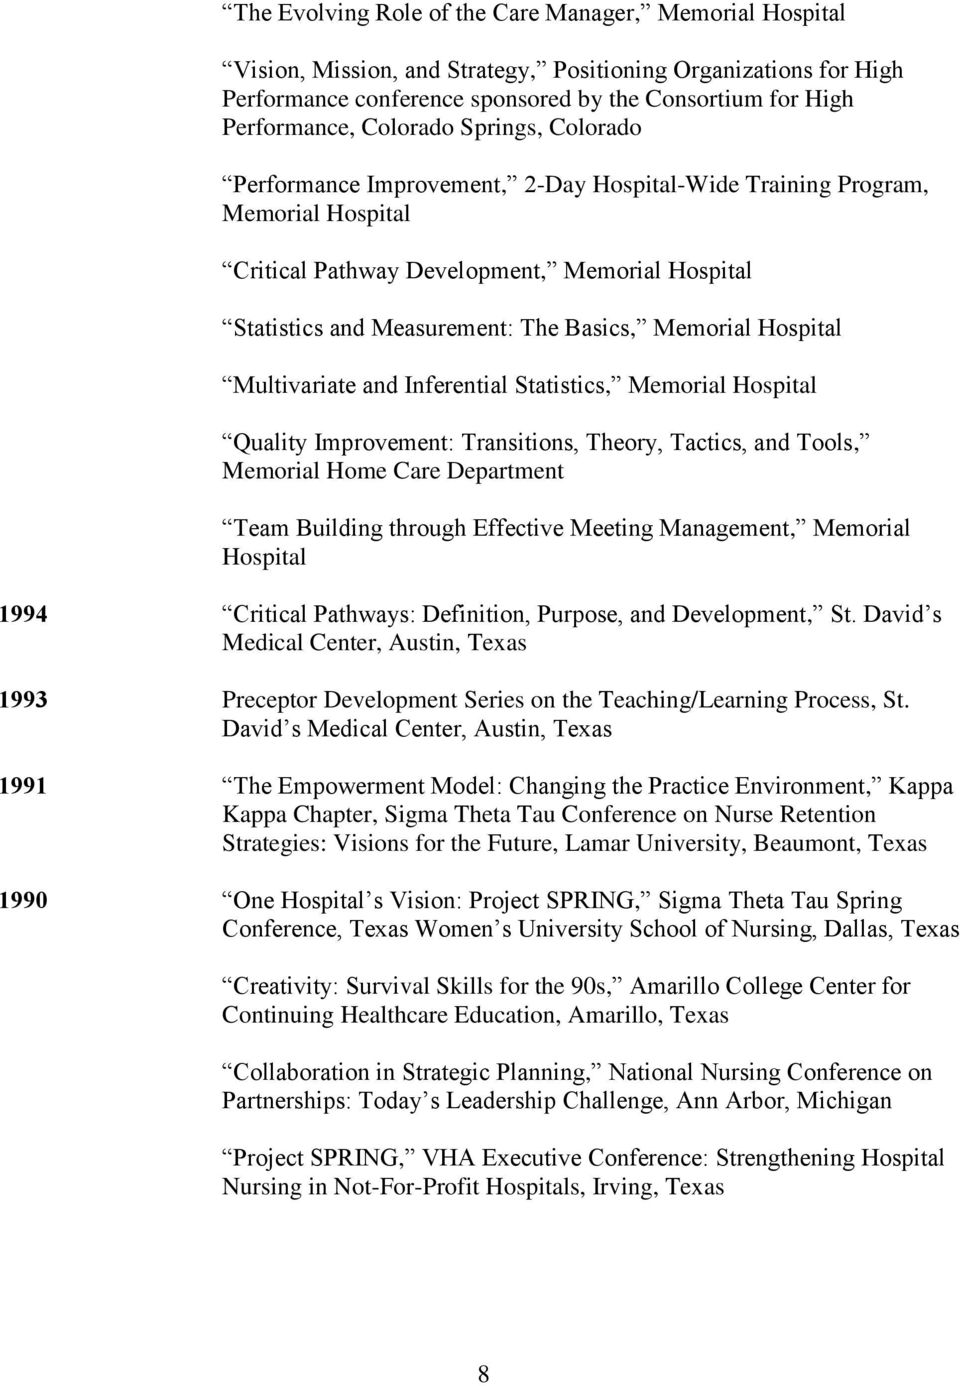 Memorial Hospital Multivariate and Inferential Statistics, Memorial Hospital Quality Improvement: Transitions, Theory, Tactics, and Tools, Memorial Home Care Department Team Building through